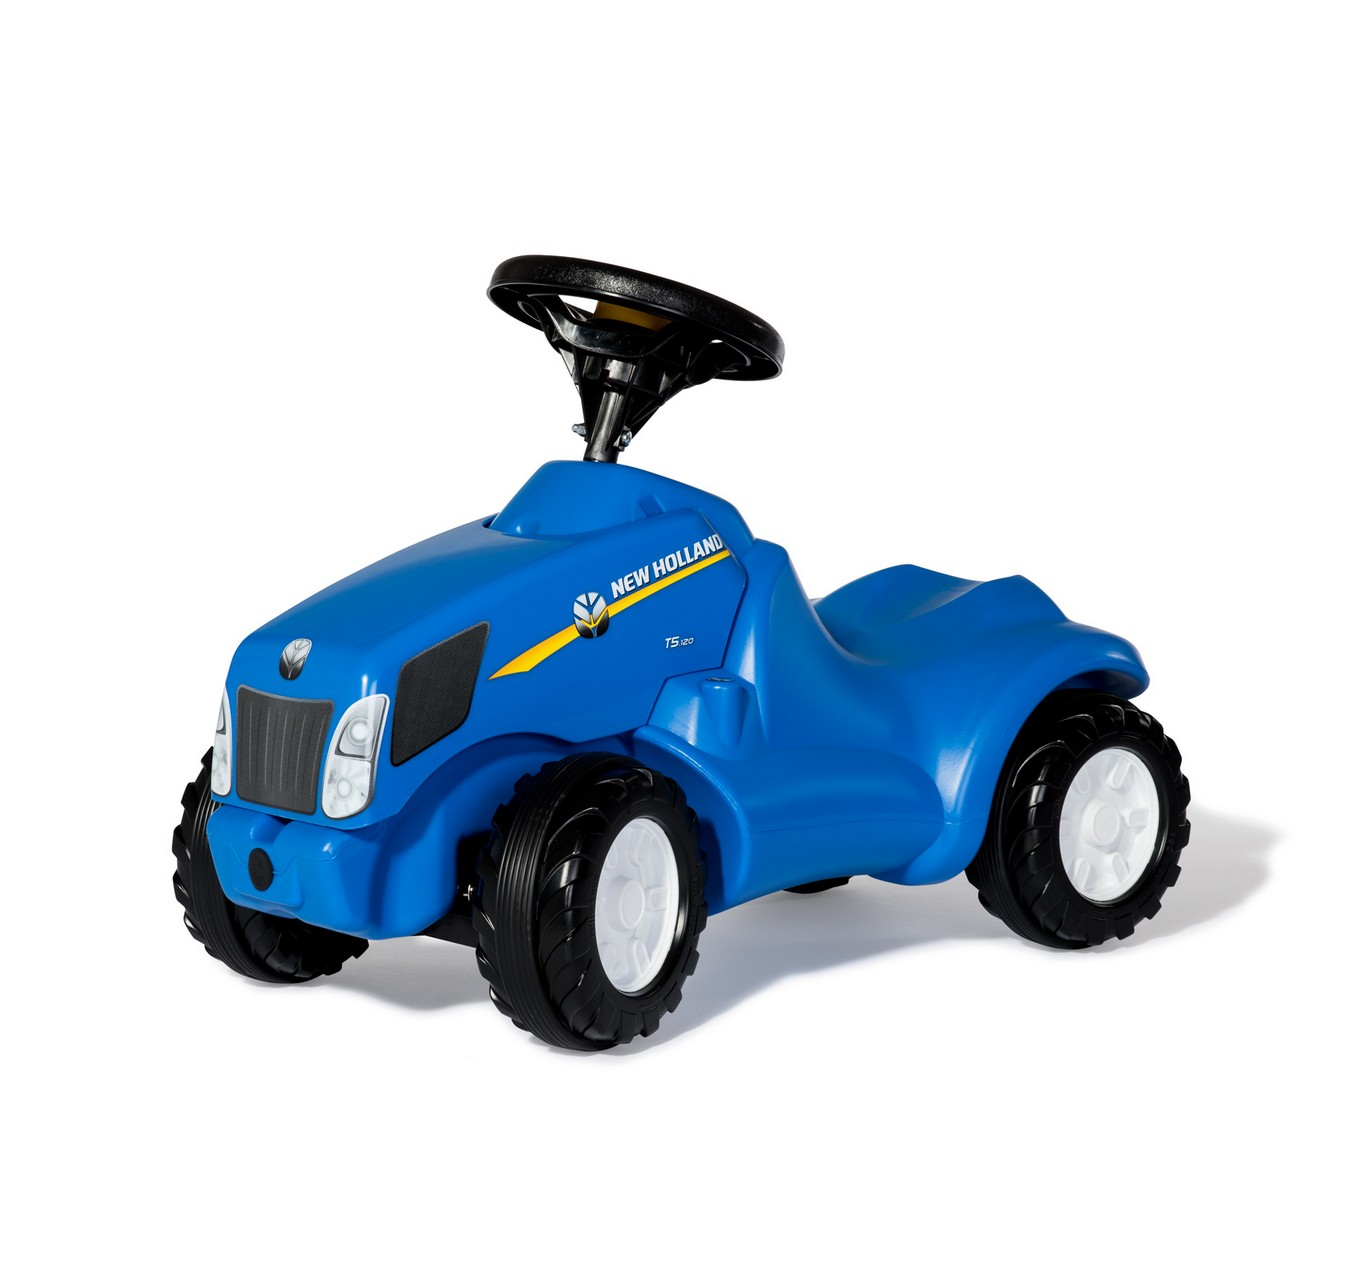 MiniTrac New Holland T6010